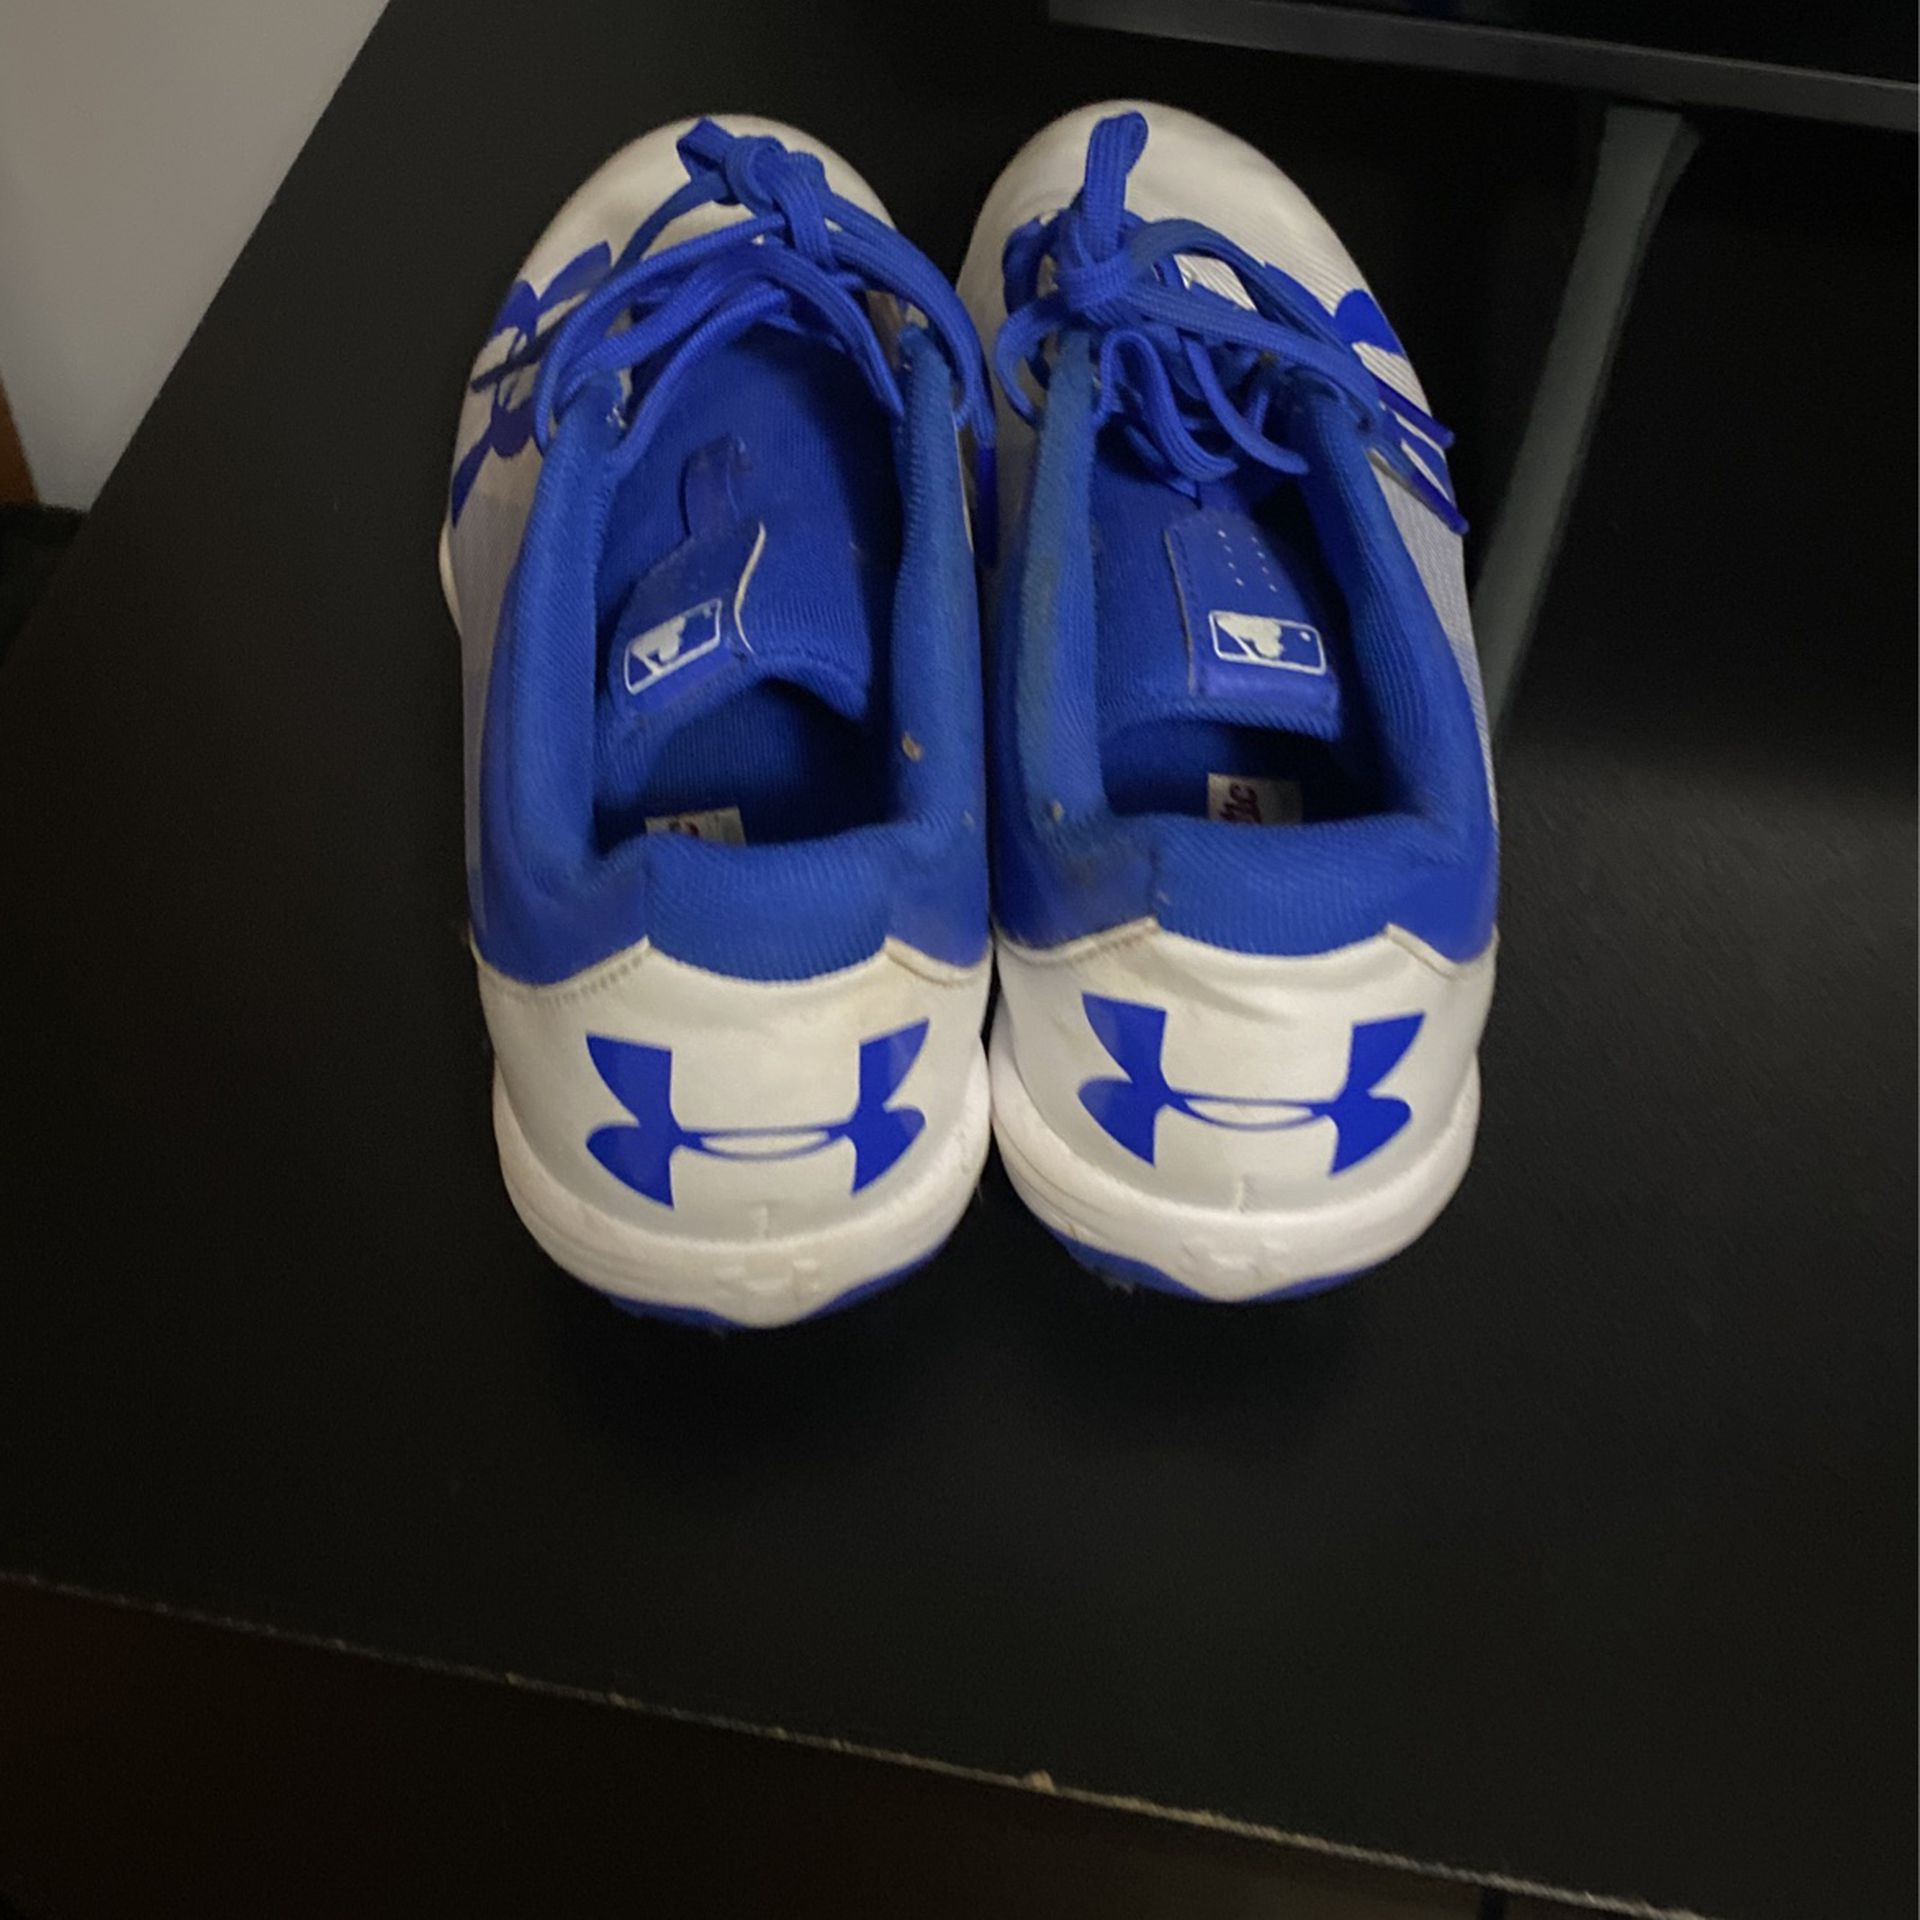 Under Amour Youth Baseball Cleats